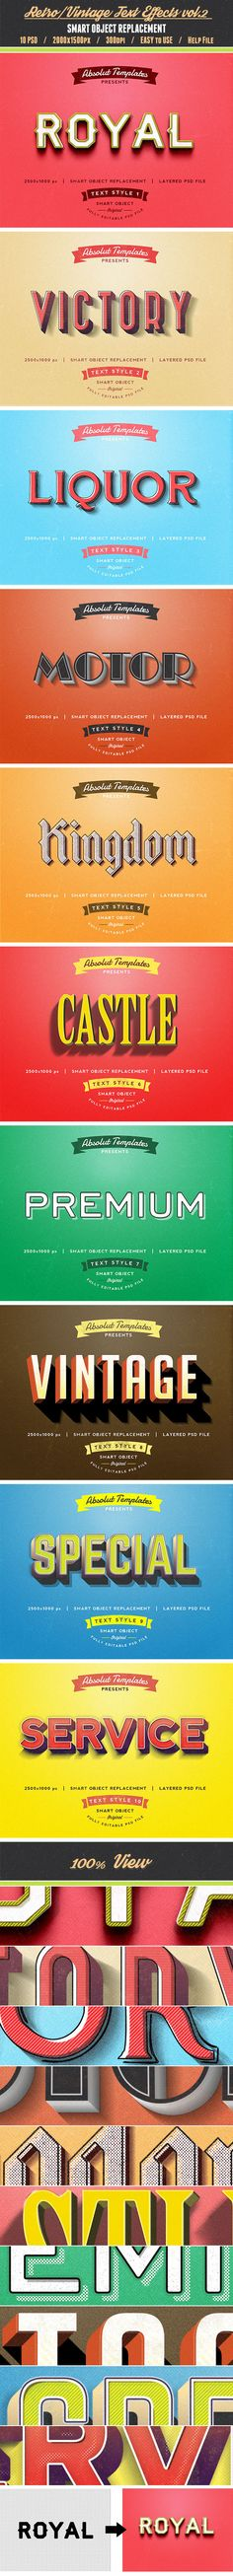 Retro Vintage Text Effects vol.2 - Text Effects Actions